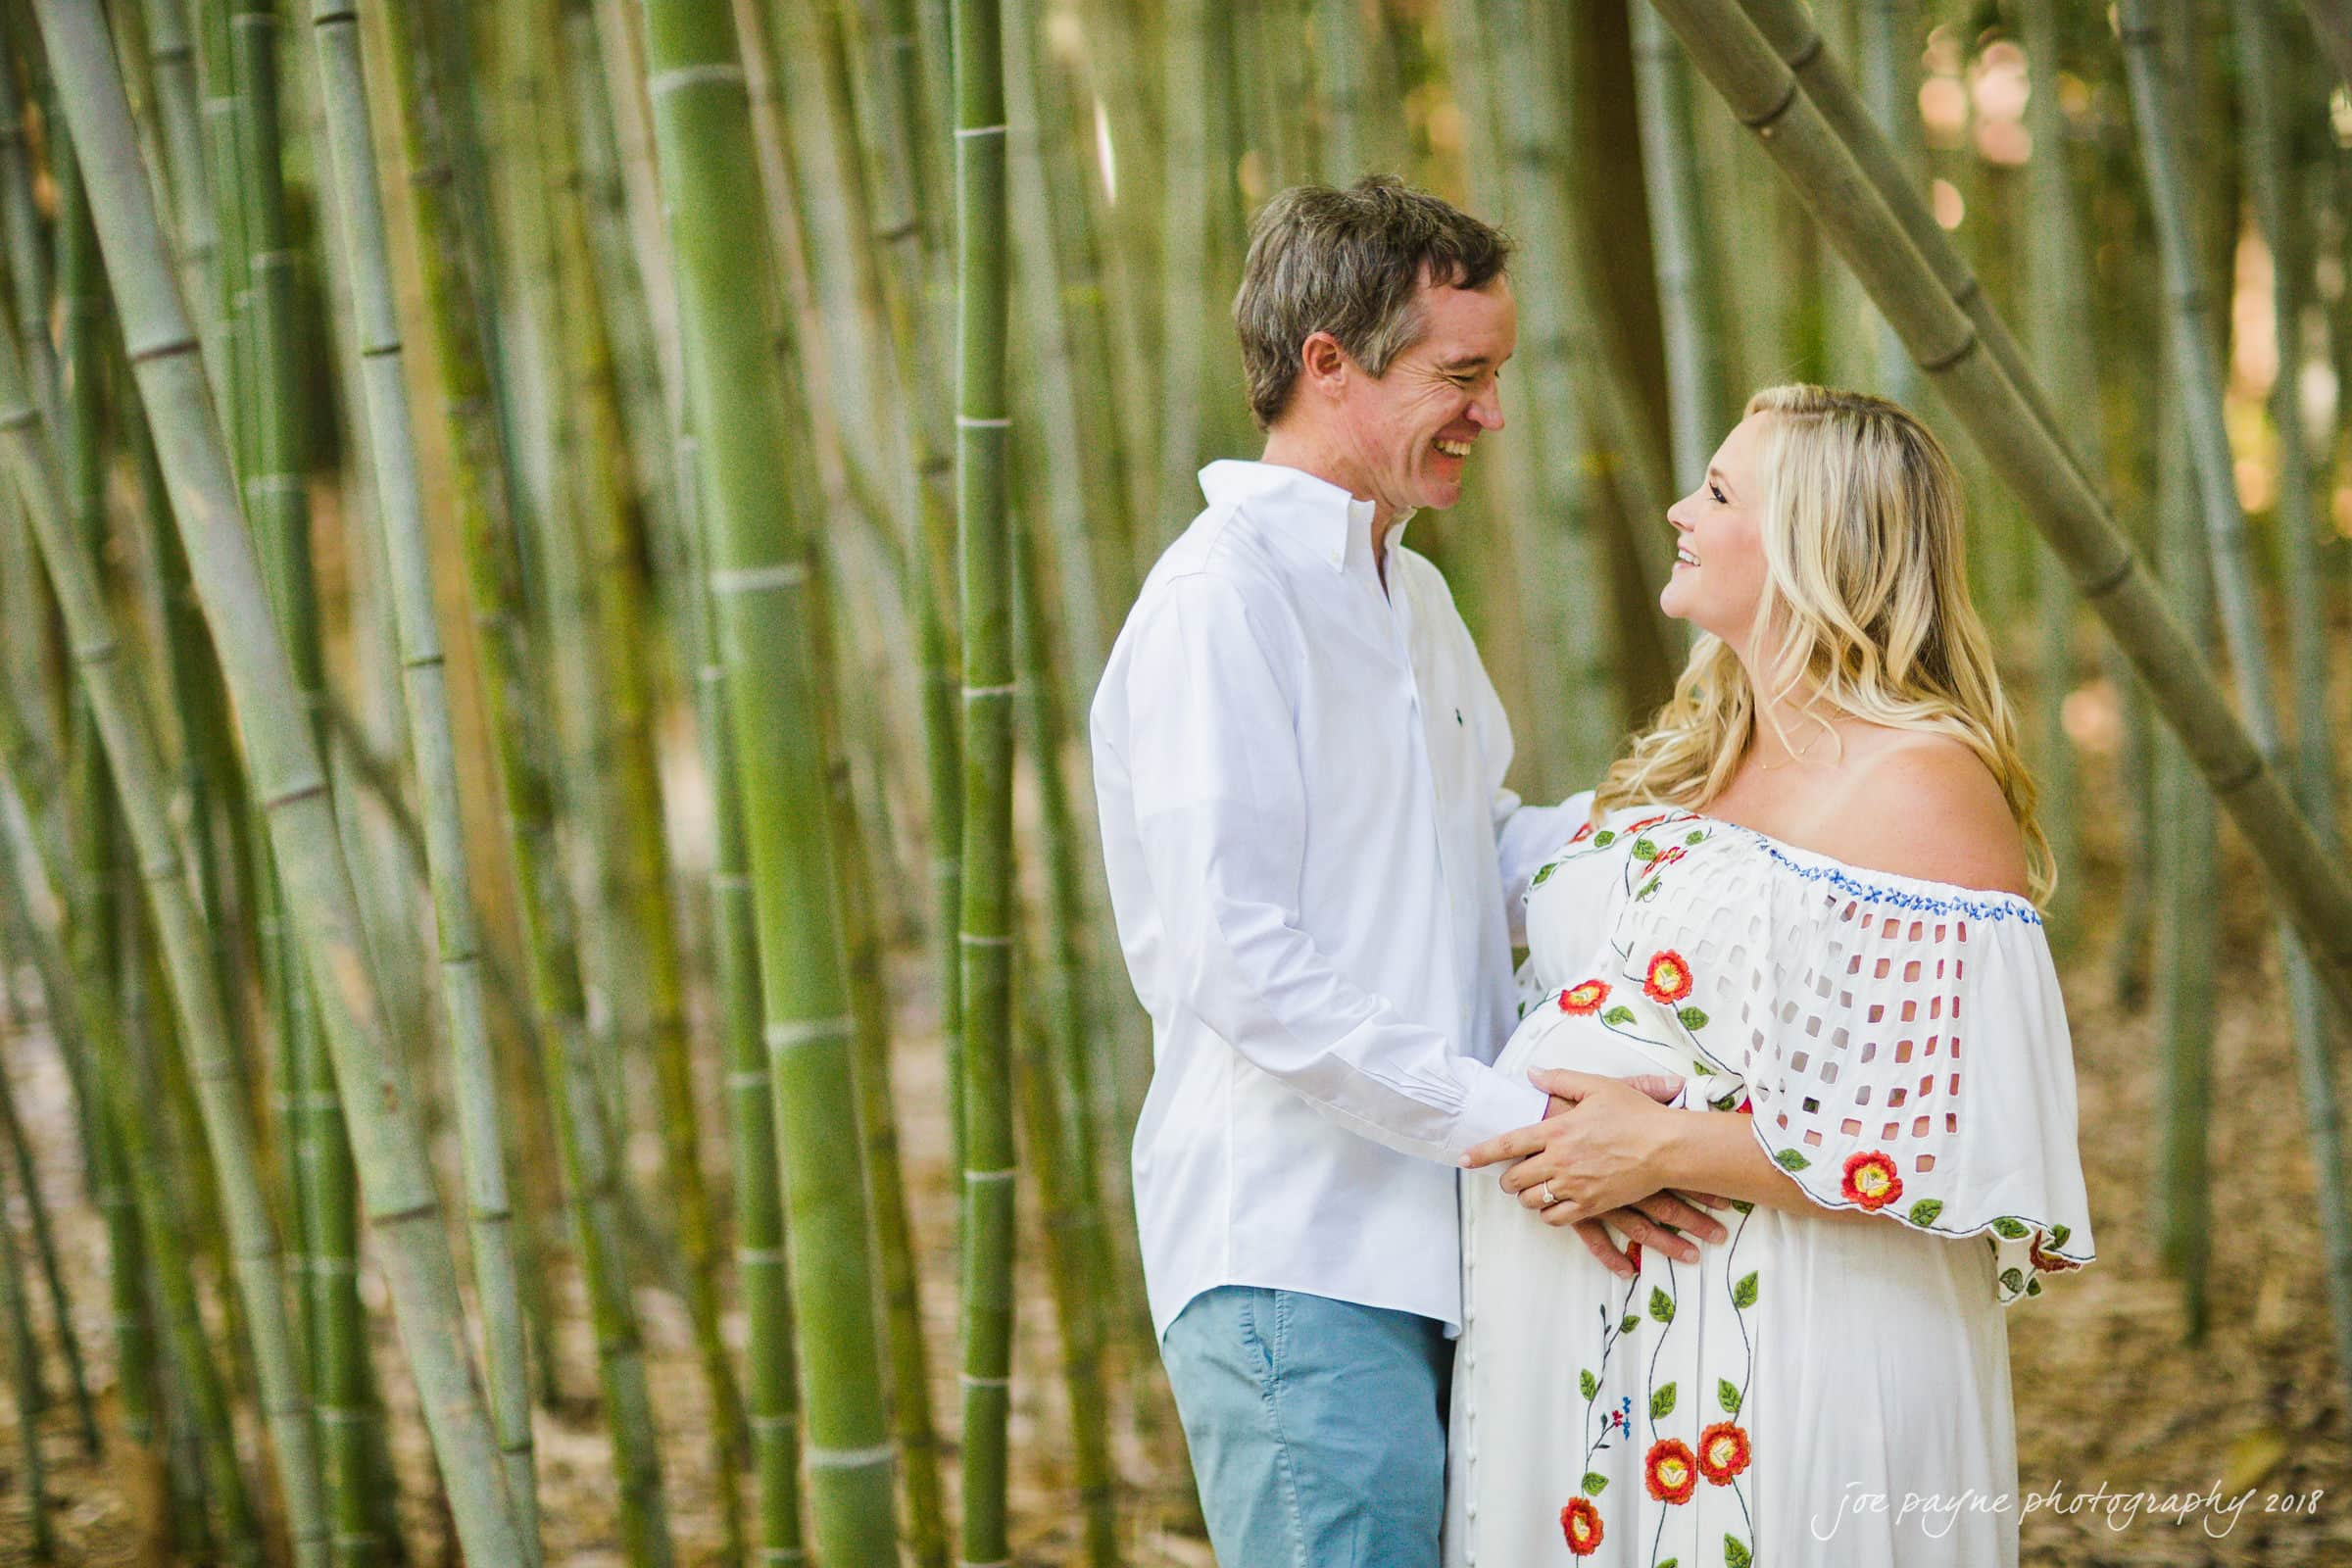 aleigh-Maternity-Photographer-Hallie-Cullen-3 duke gardens maternity session - hallie & cullen